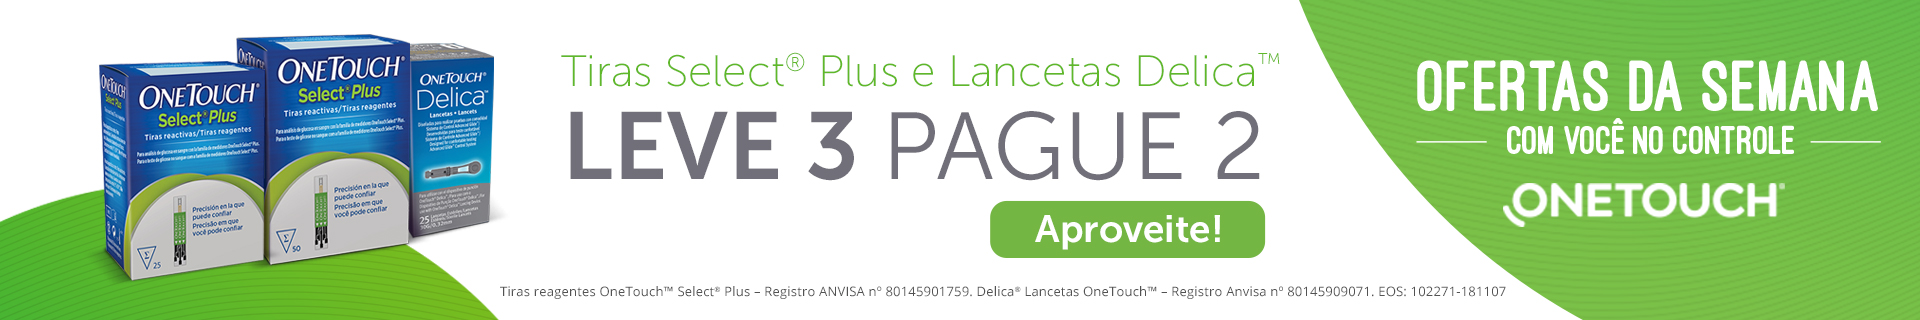 Home | Onetouch leve 3 pague 2